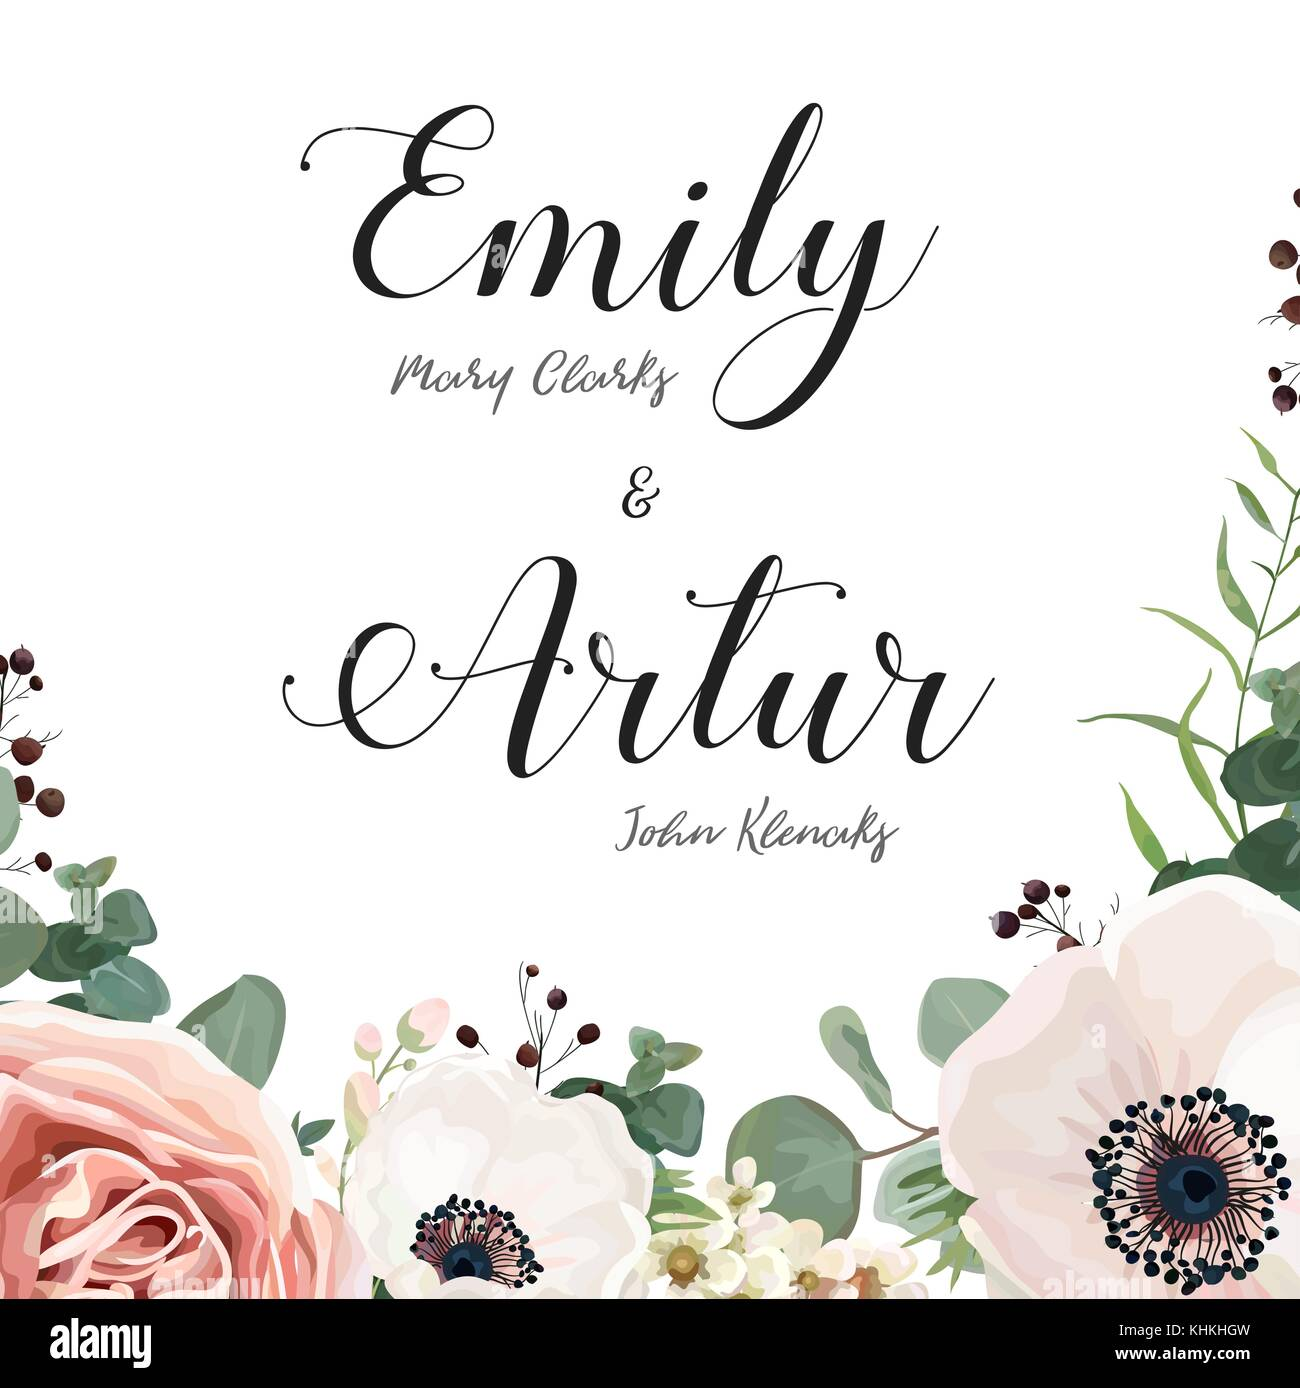 Floral Wedding Invitation elegant invite card vector Design ...